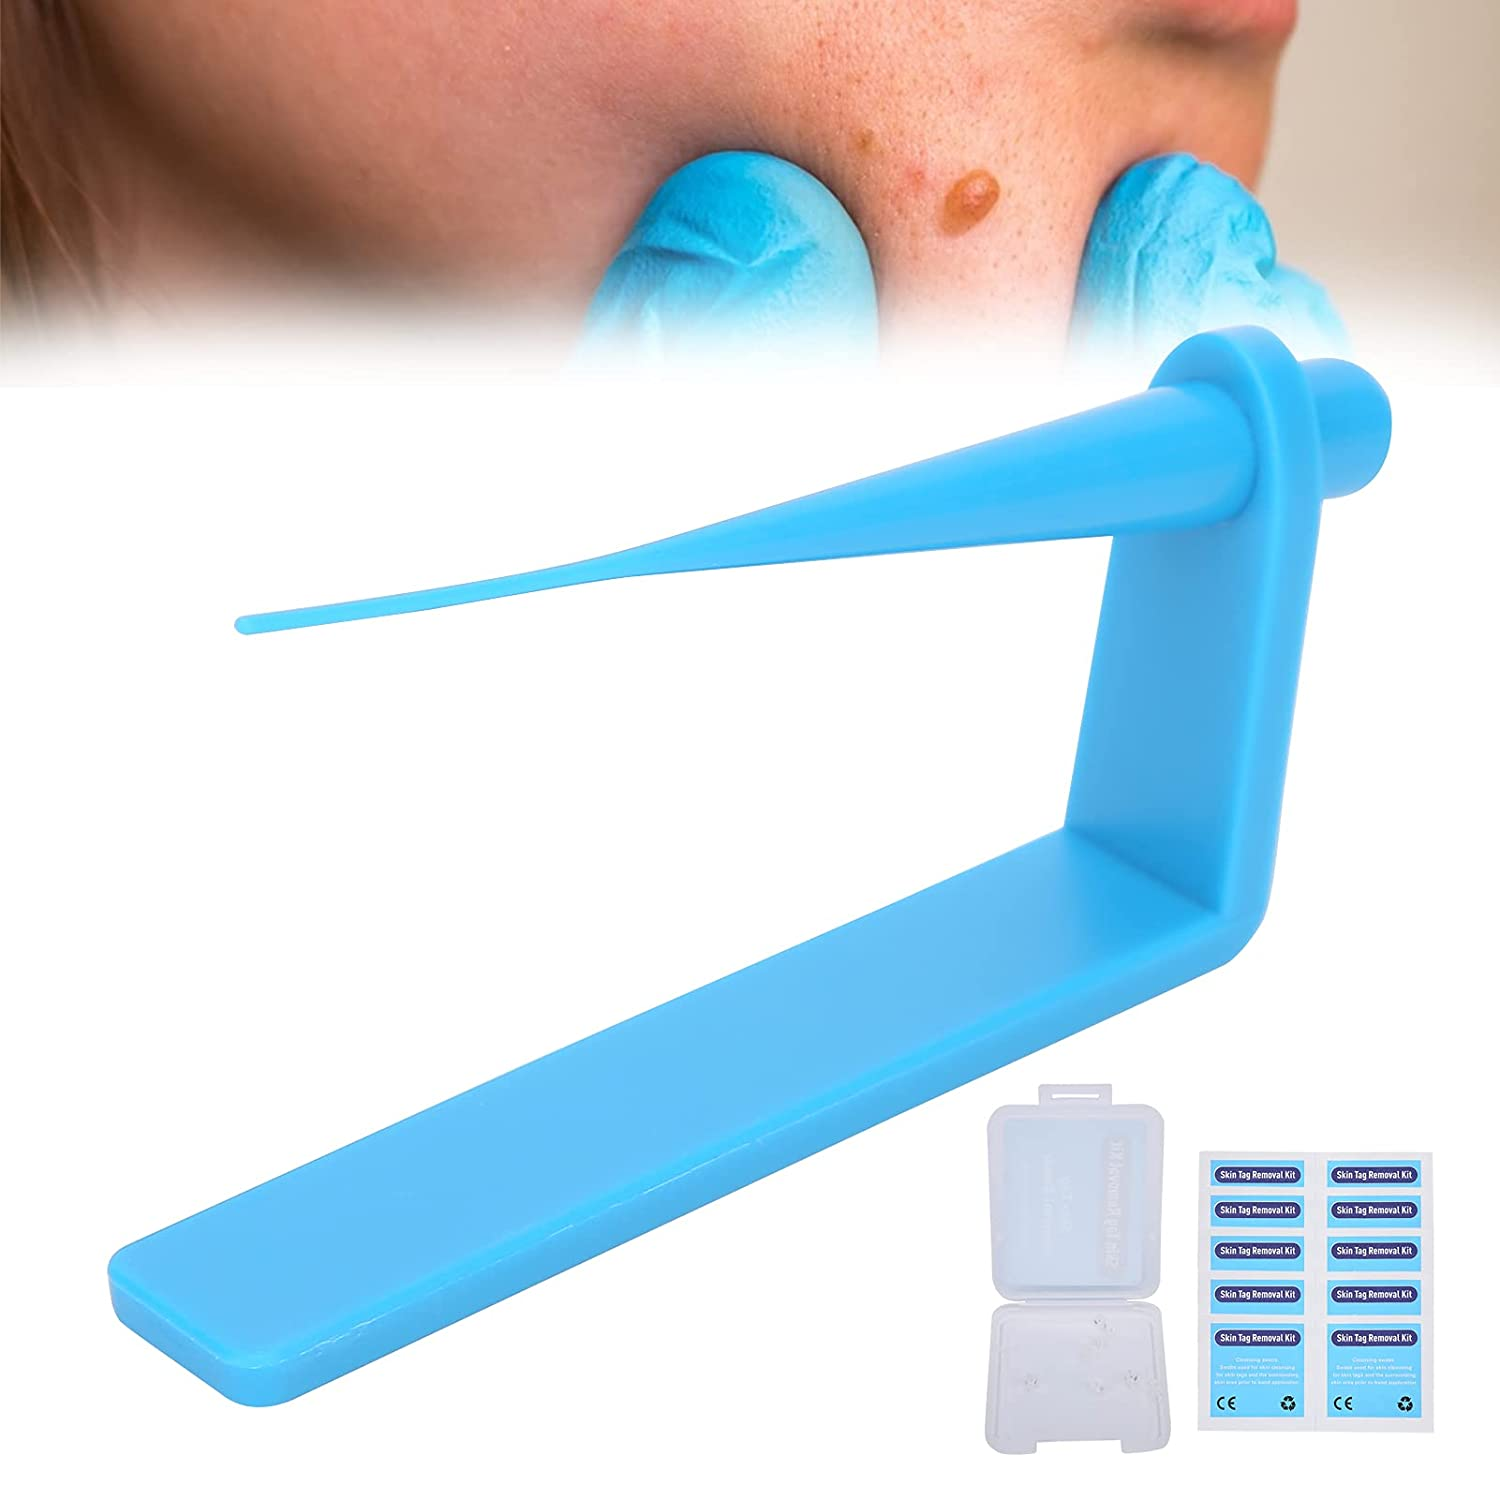 Sales of SALE items from new works Skin Tag Remover Kit Micro Small Sk For Discount is also underway Device